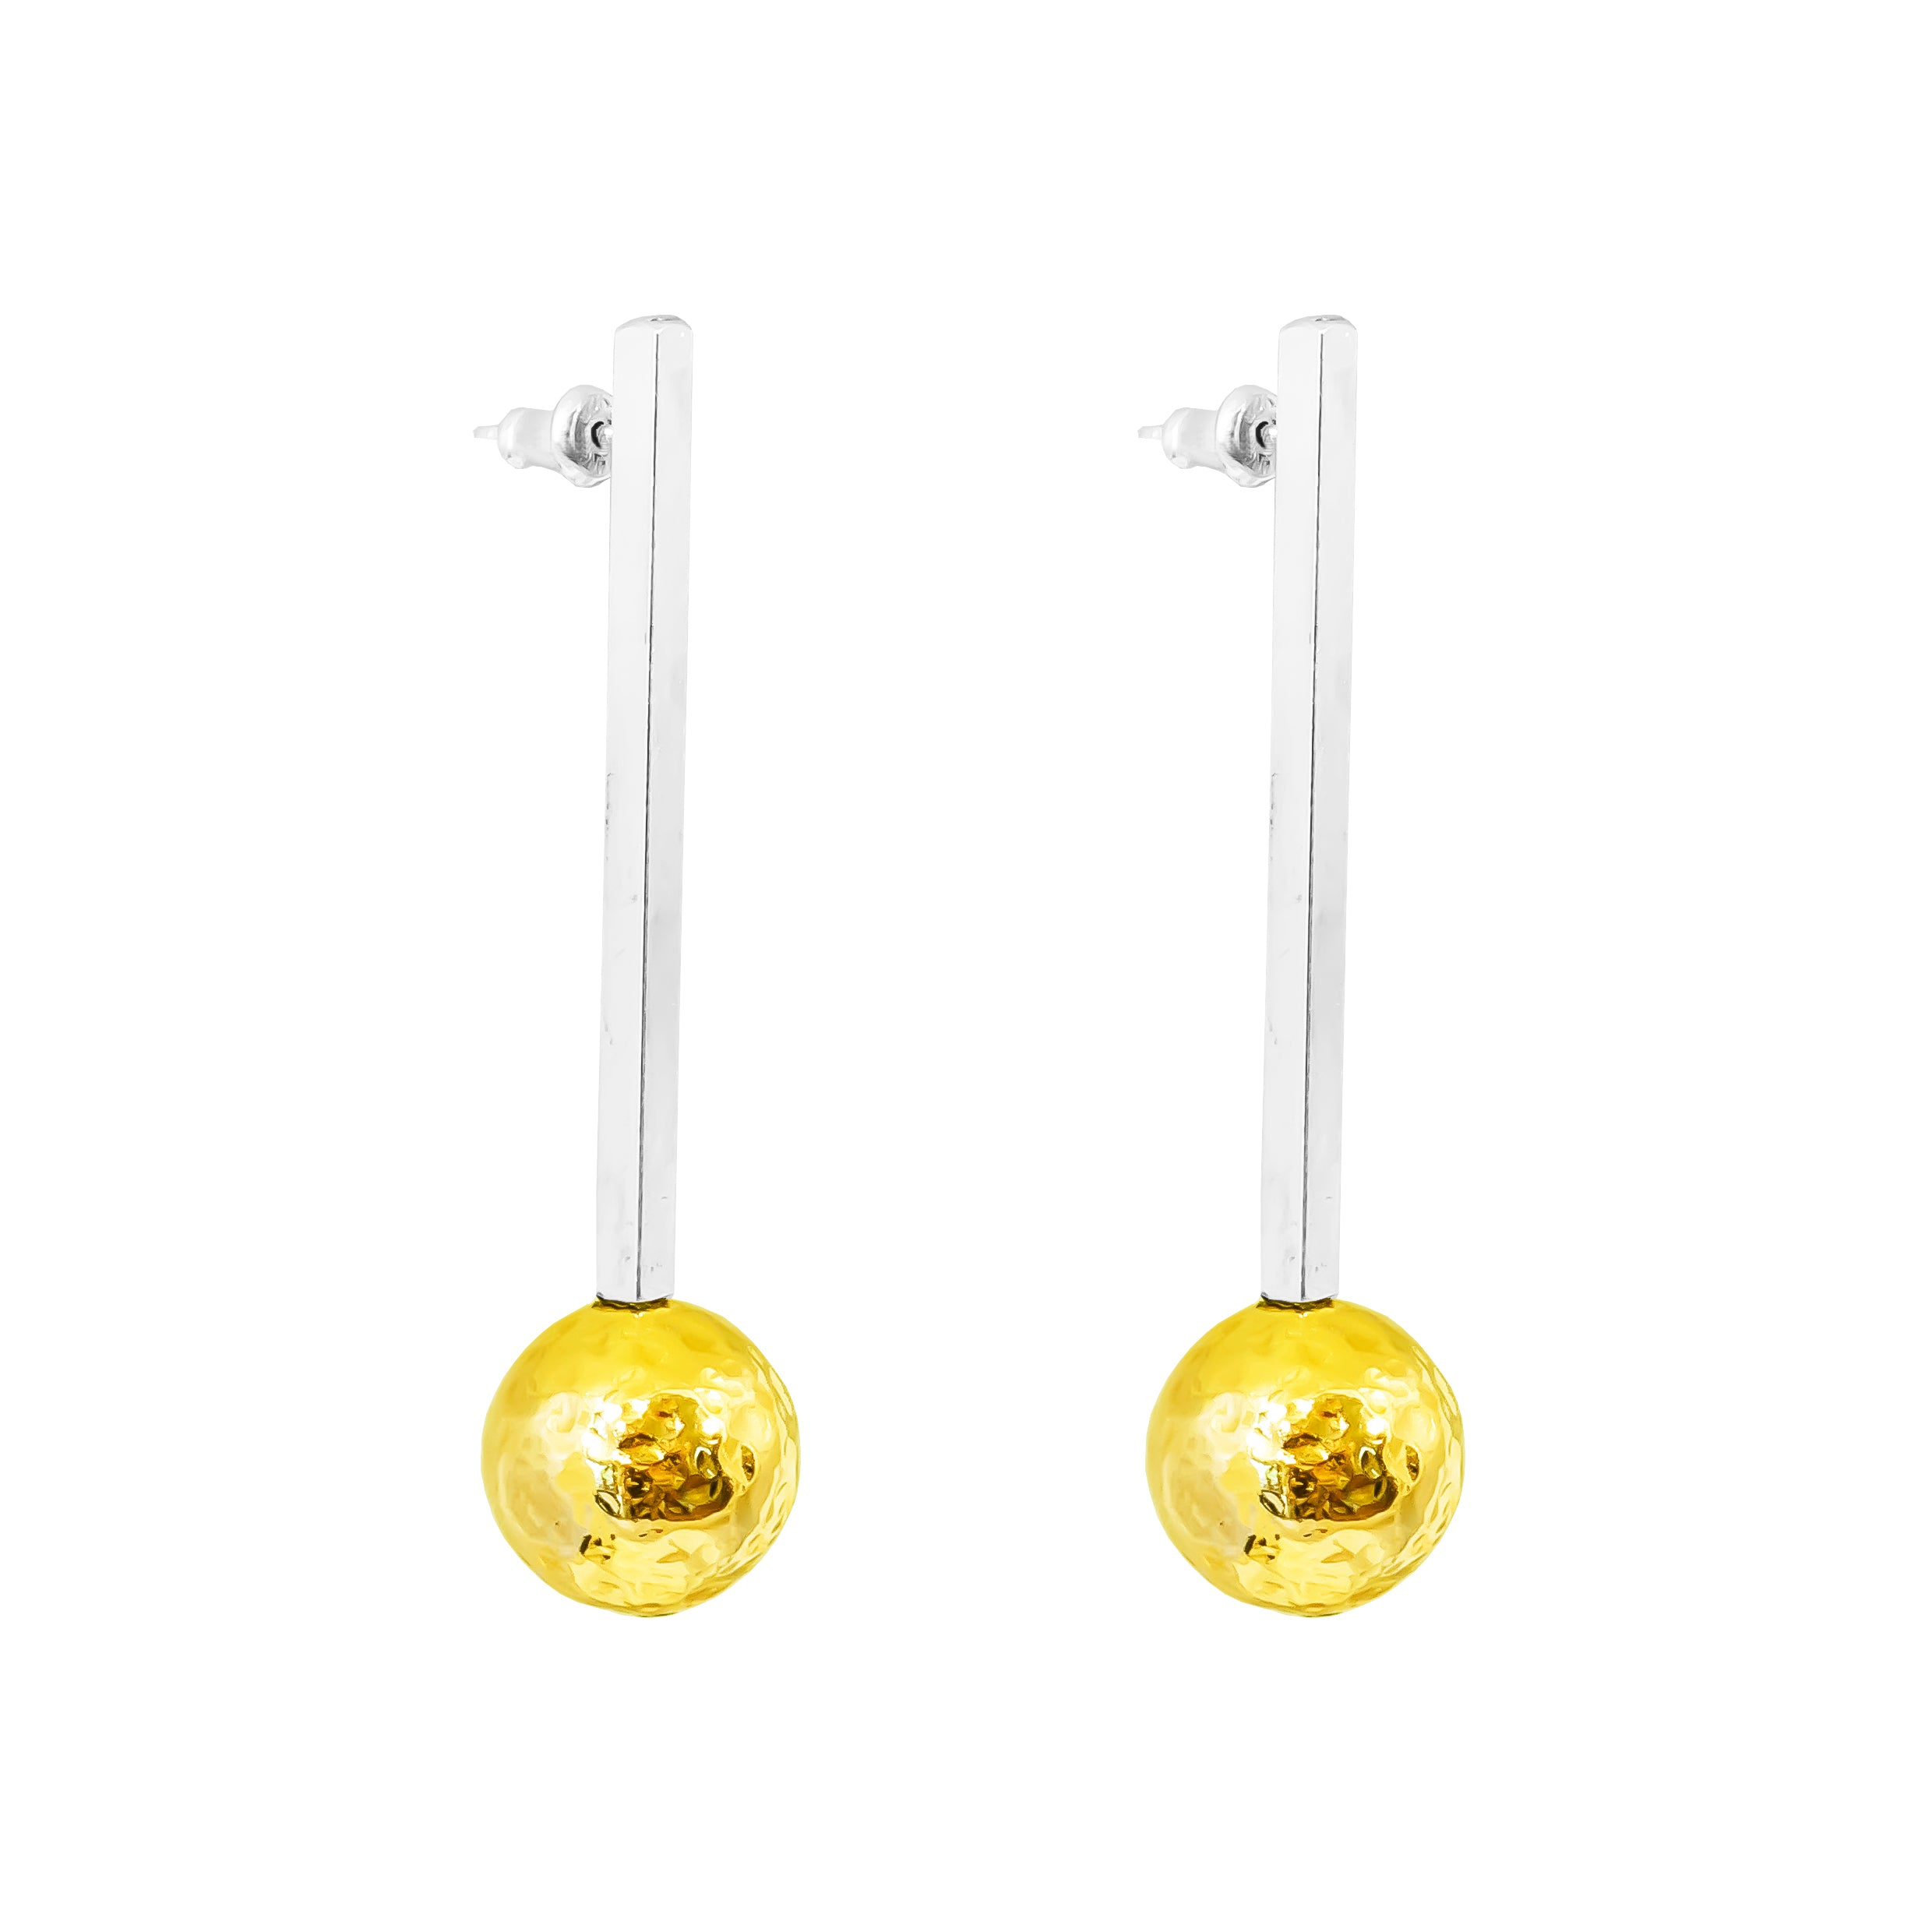 Kiera Earrings - Long | Polished Silver Bar With Hammered Gold Detail